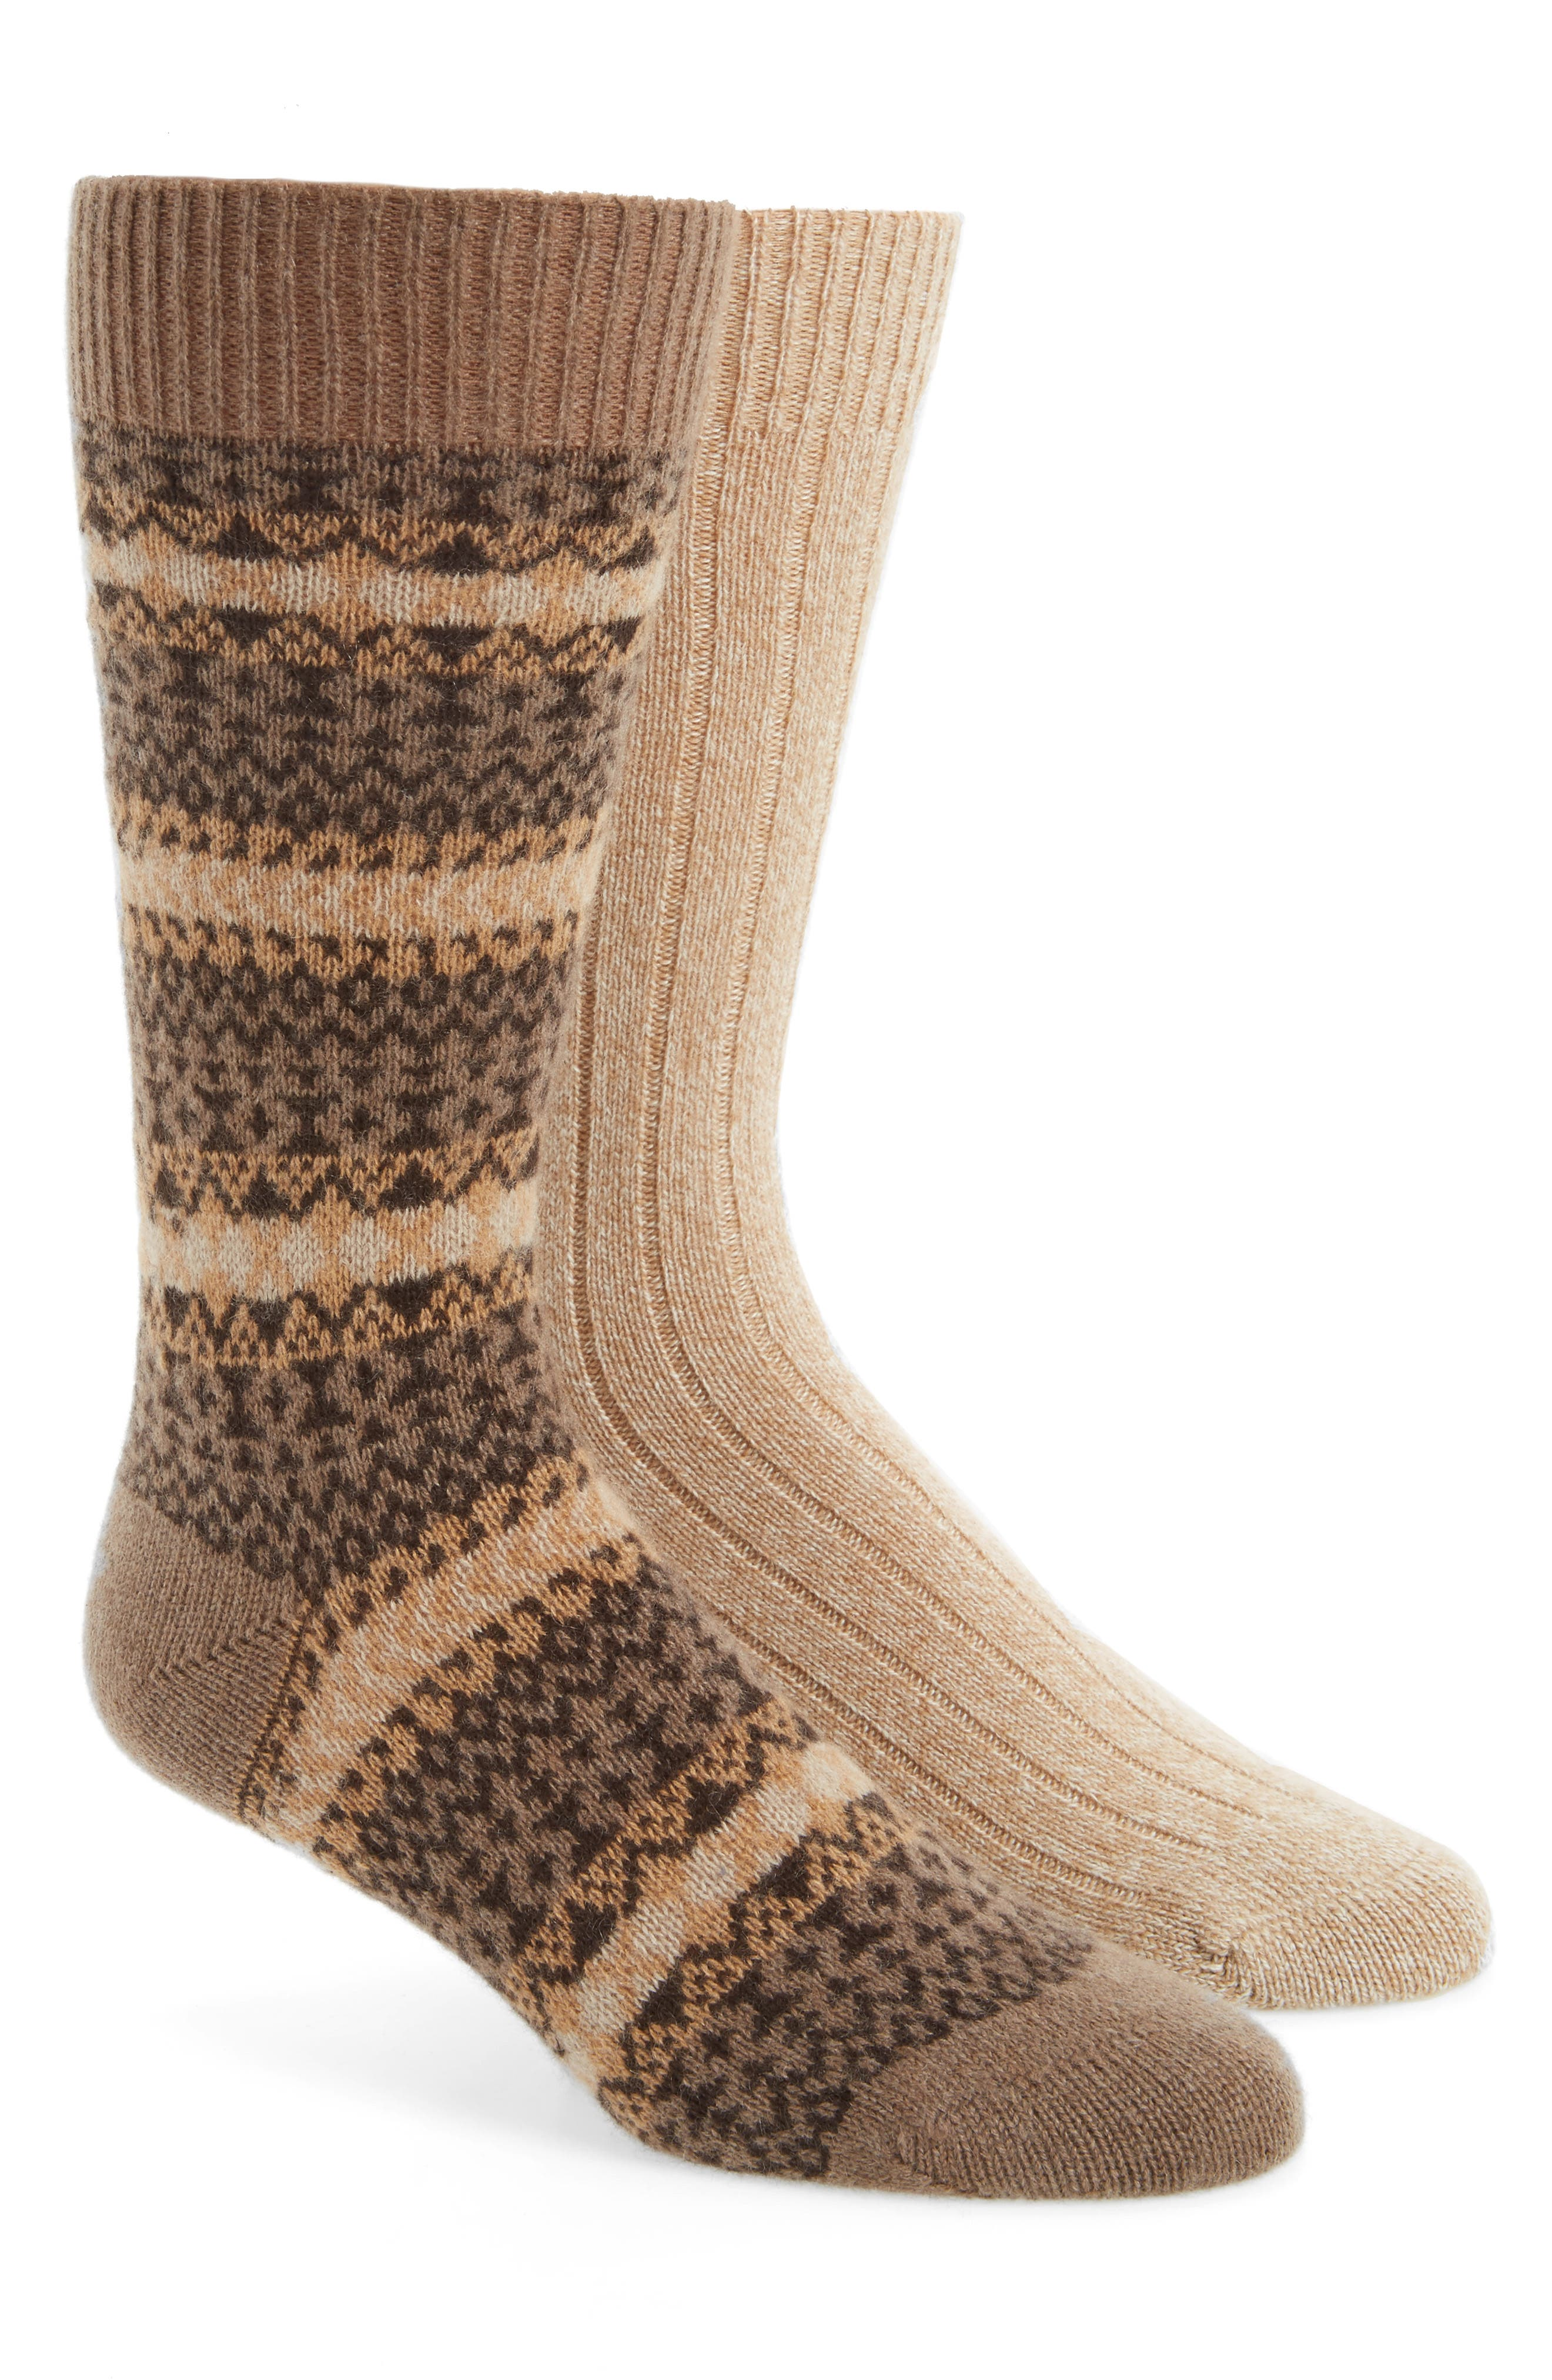 2-Pack Cashmere Blend Socks,                         Main,                         color, Oatmeal Chine